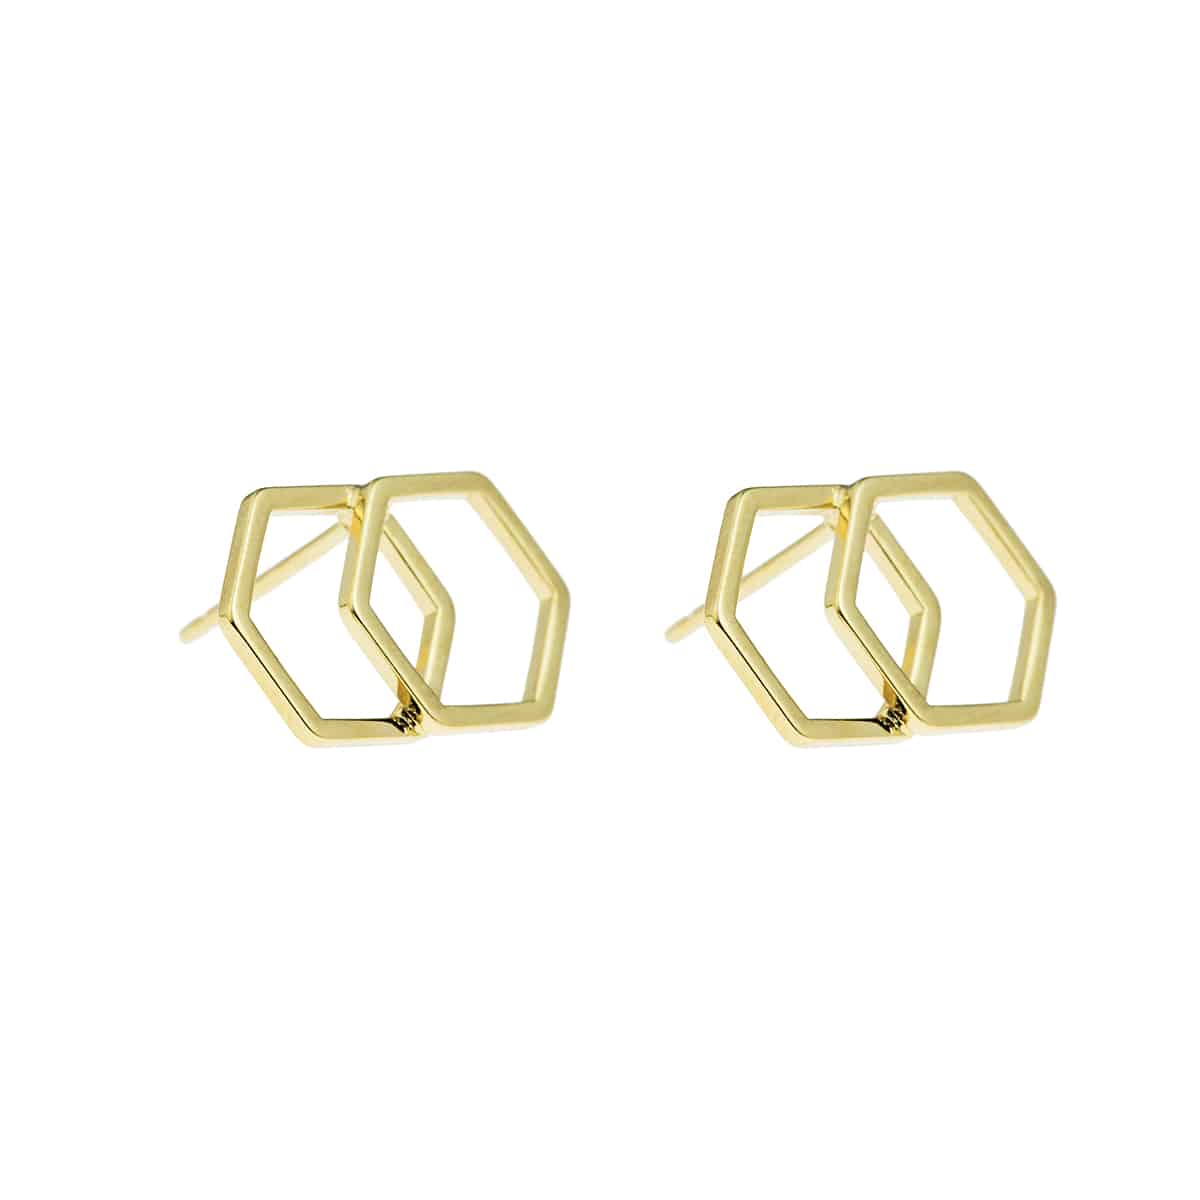 golden hexagone earrings coralie de seynes l'Erudite Concept Store handmade